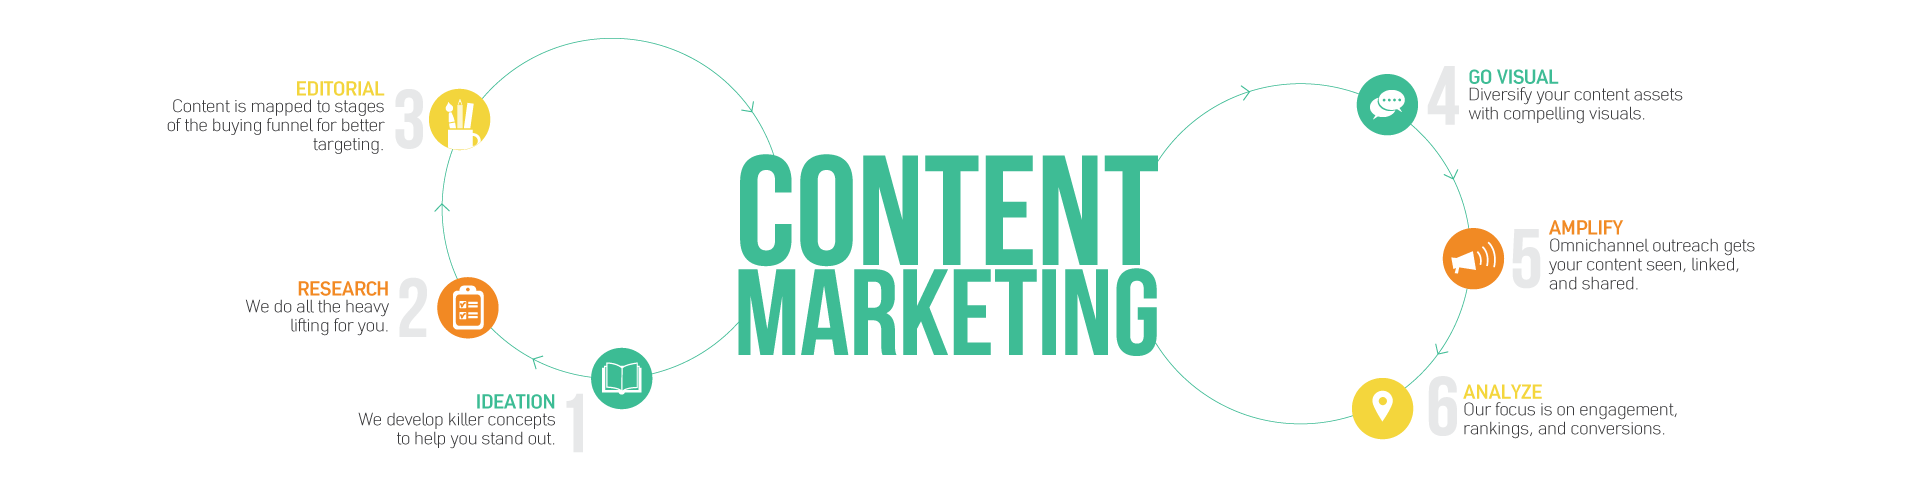 Content_Marketing_text